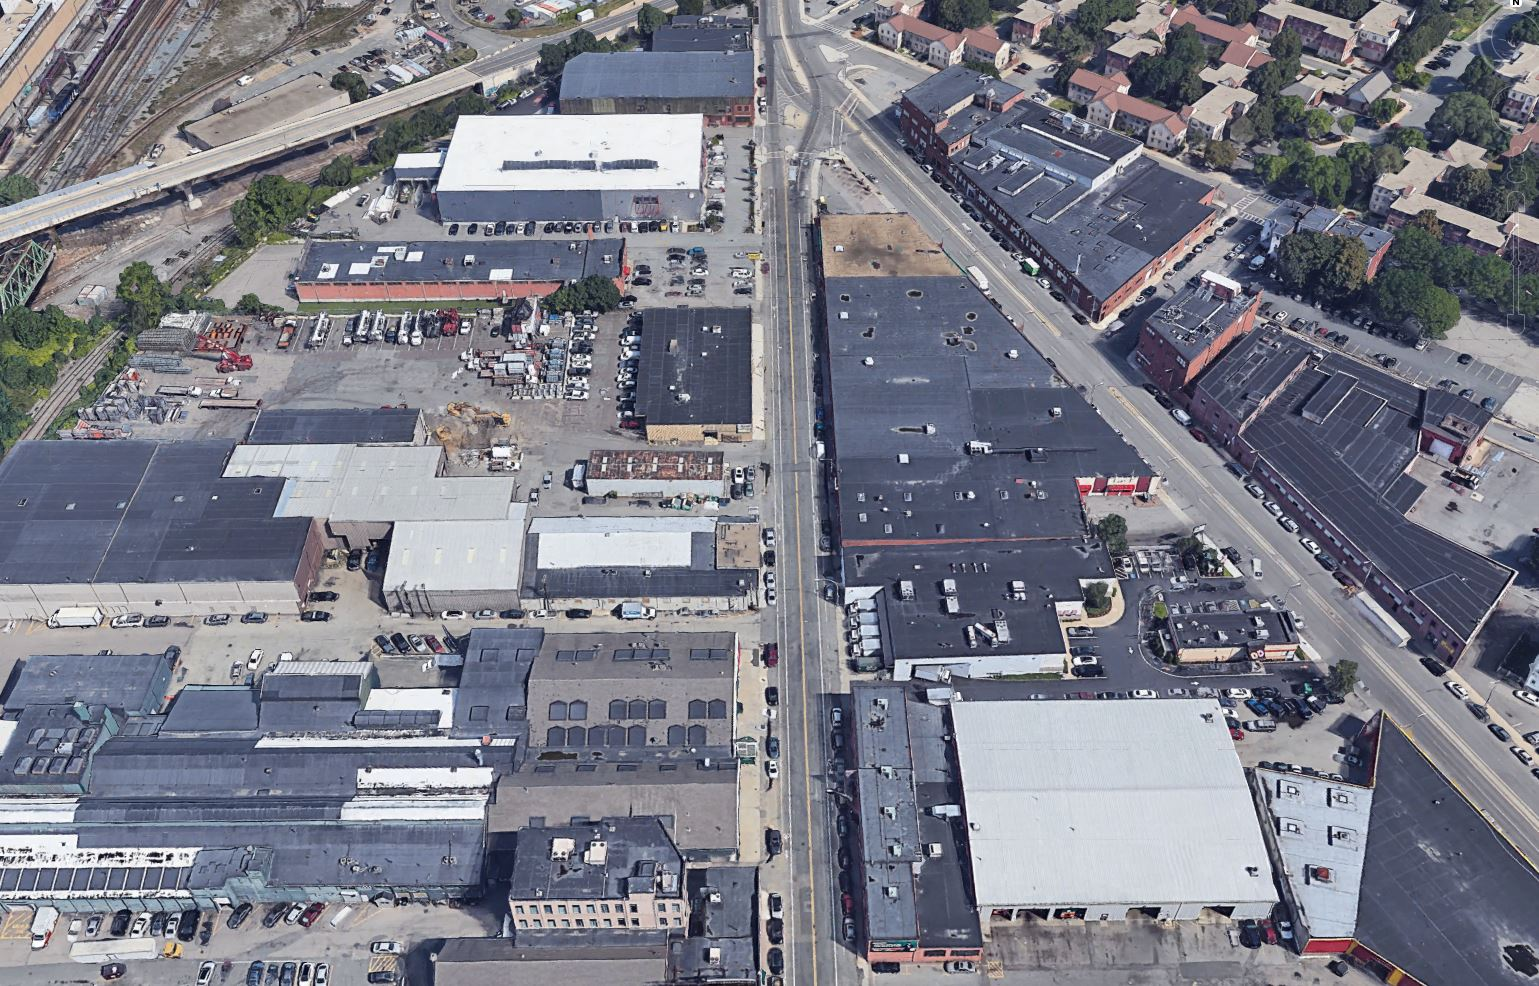 ND Plans 'Transformative' Mixed-use Development on 10 Acres in South Boston